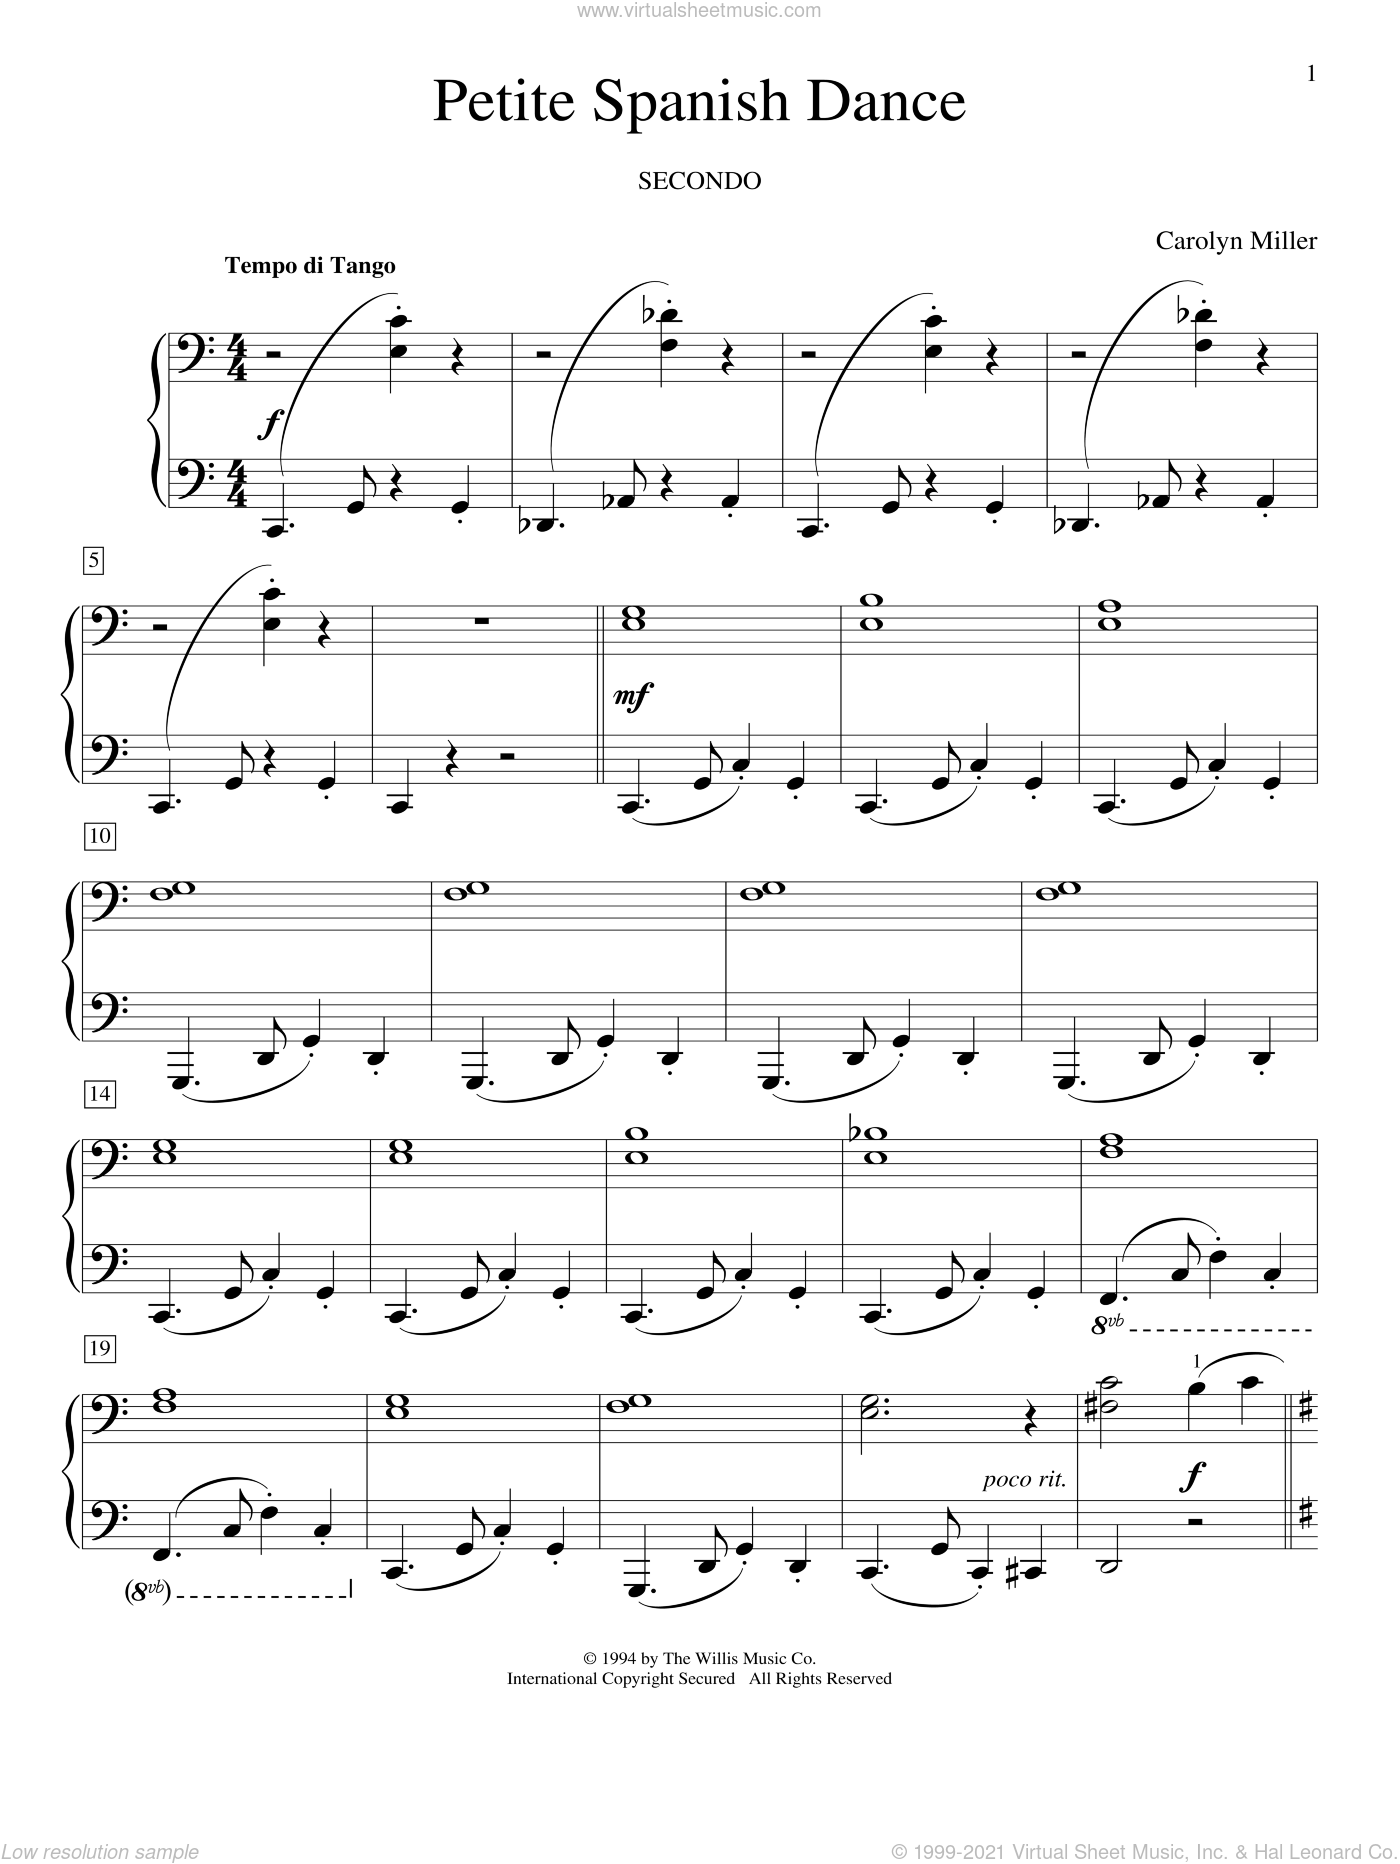 Petite Spanish Dance sheet music for piano four hands (duets) by Carolyn Miller